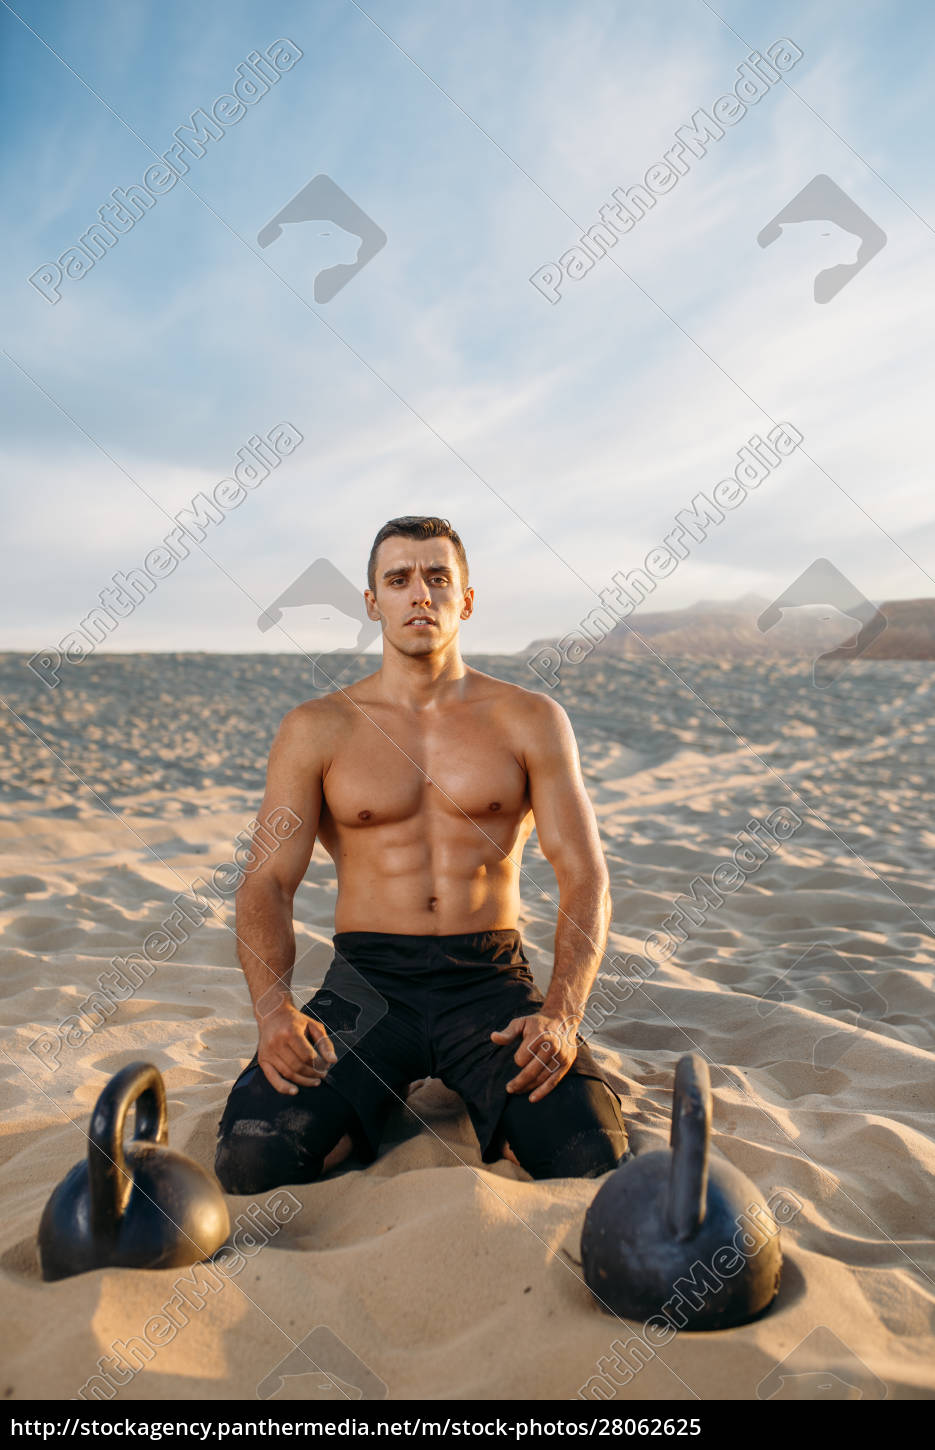 male, athlete, after, workout, in, desert - 28062625